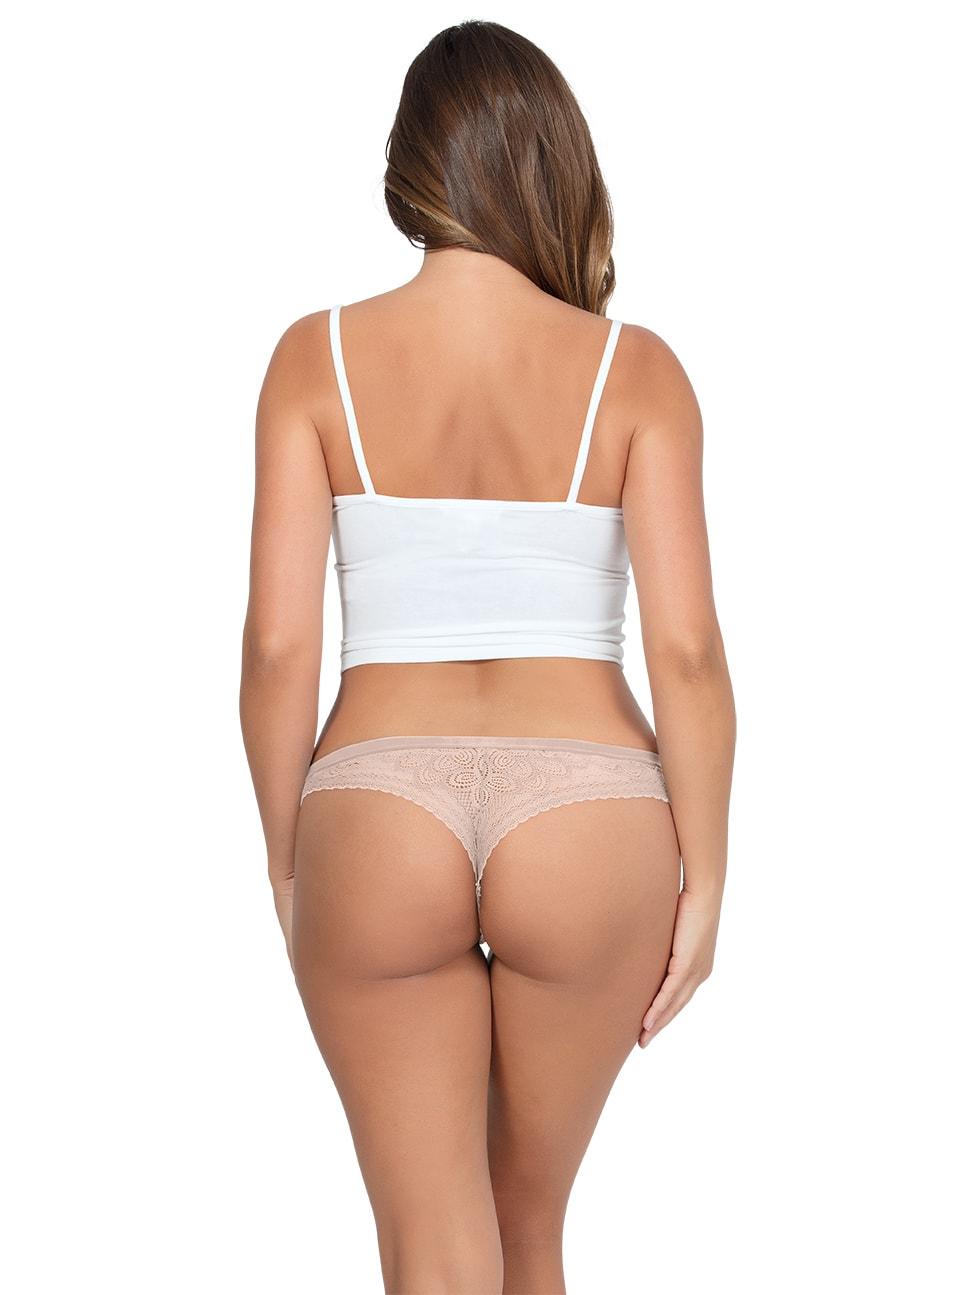 PARFAIT ParfaitPanty SoGlam ThongPP402 Bare Back copy - Panty So Glam Thong - Bare - PP402